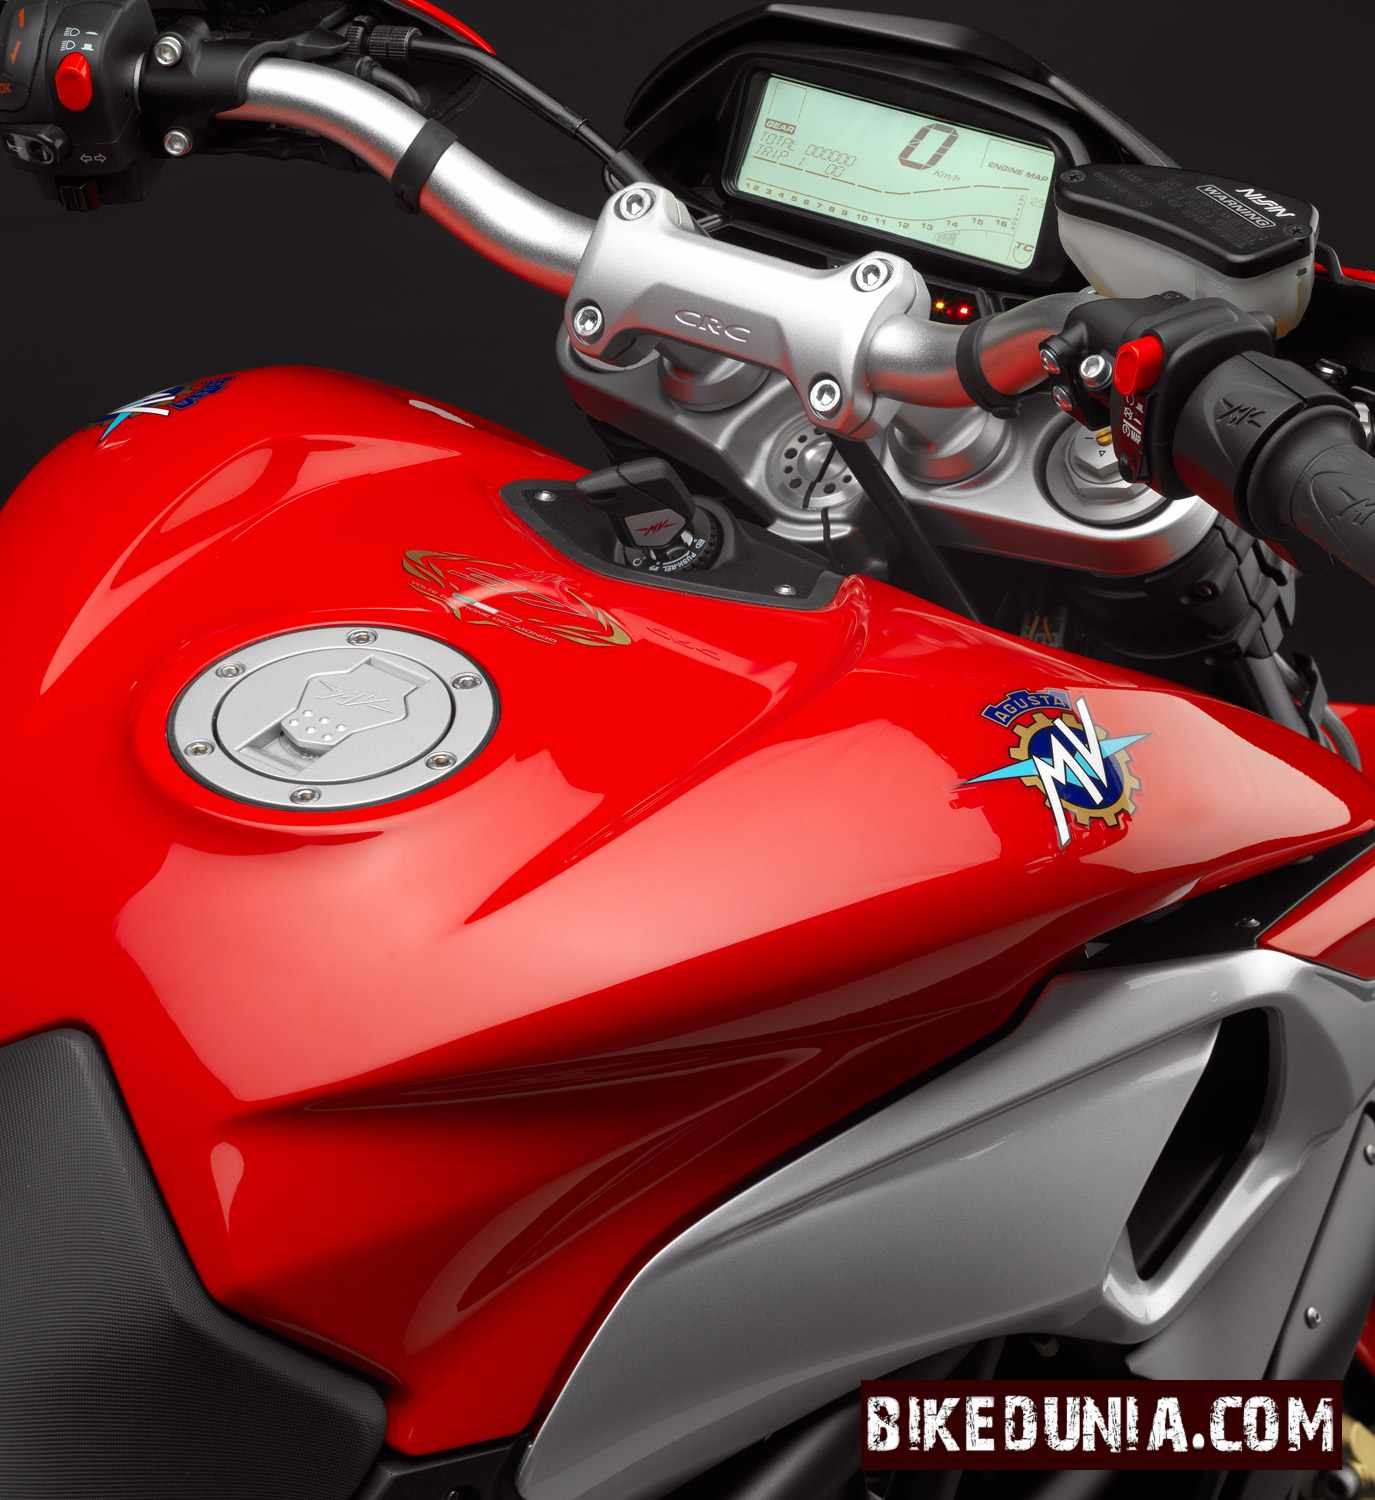 Once the rivale 800 makes arrival it would be available at mv agusta